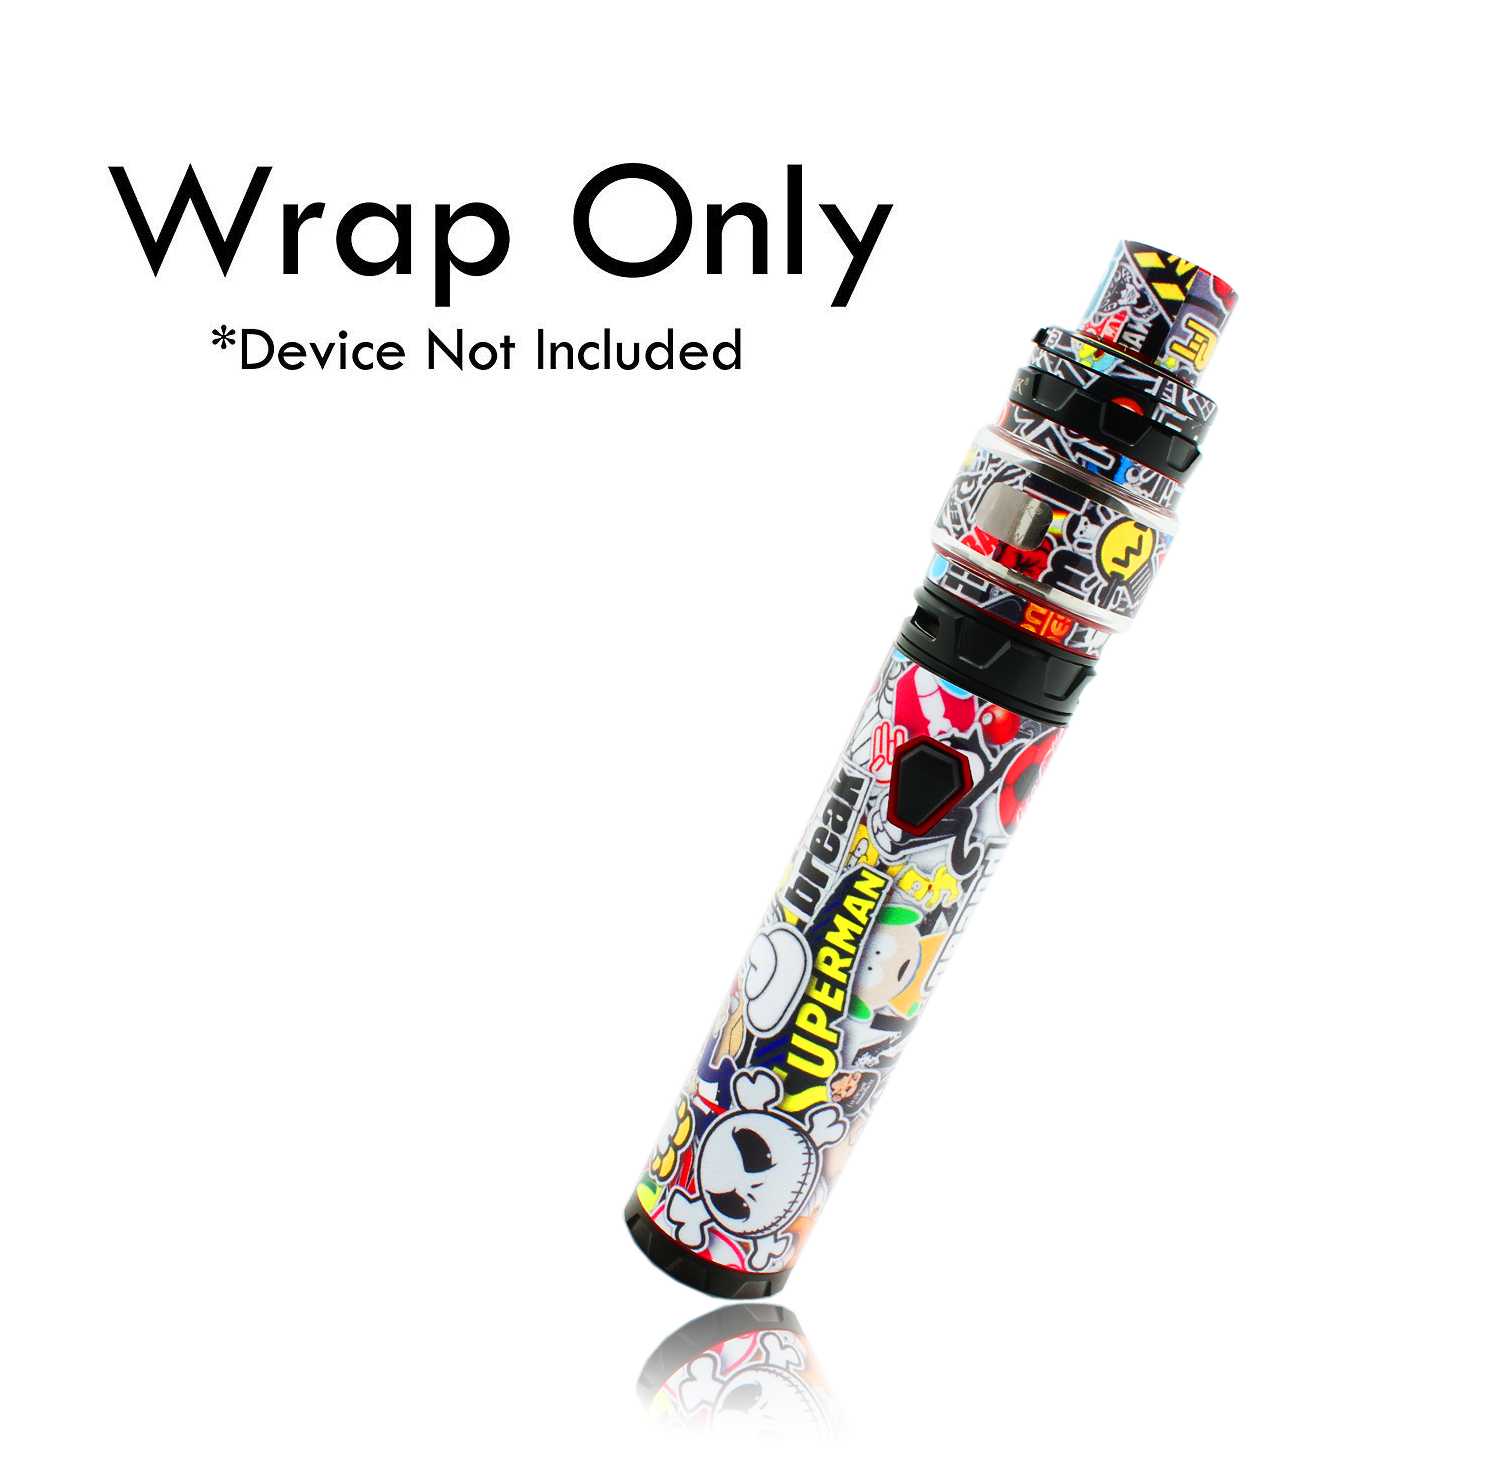 Vape Central Group Wraps for Smok Prince Stick!